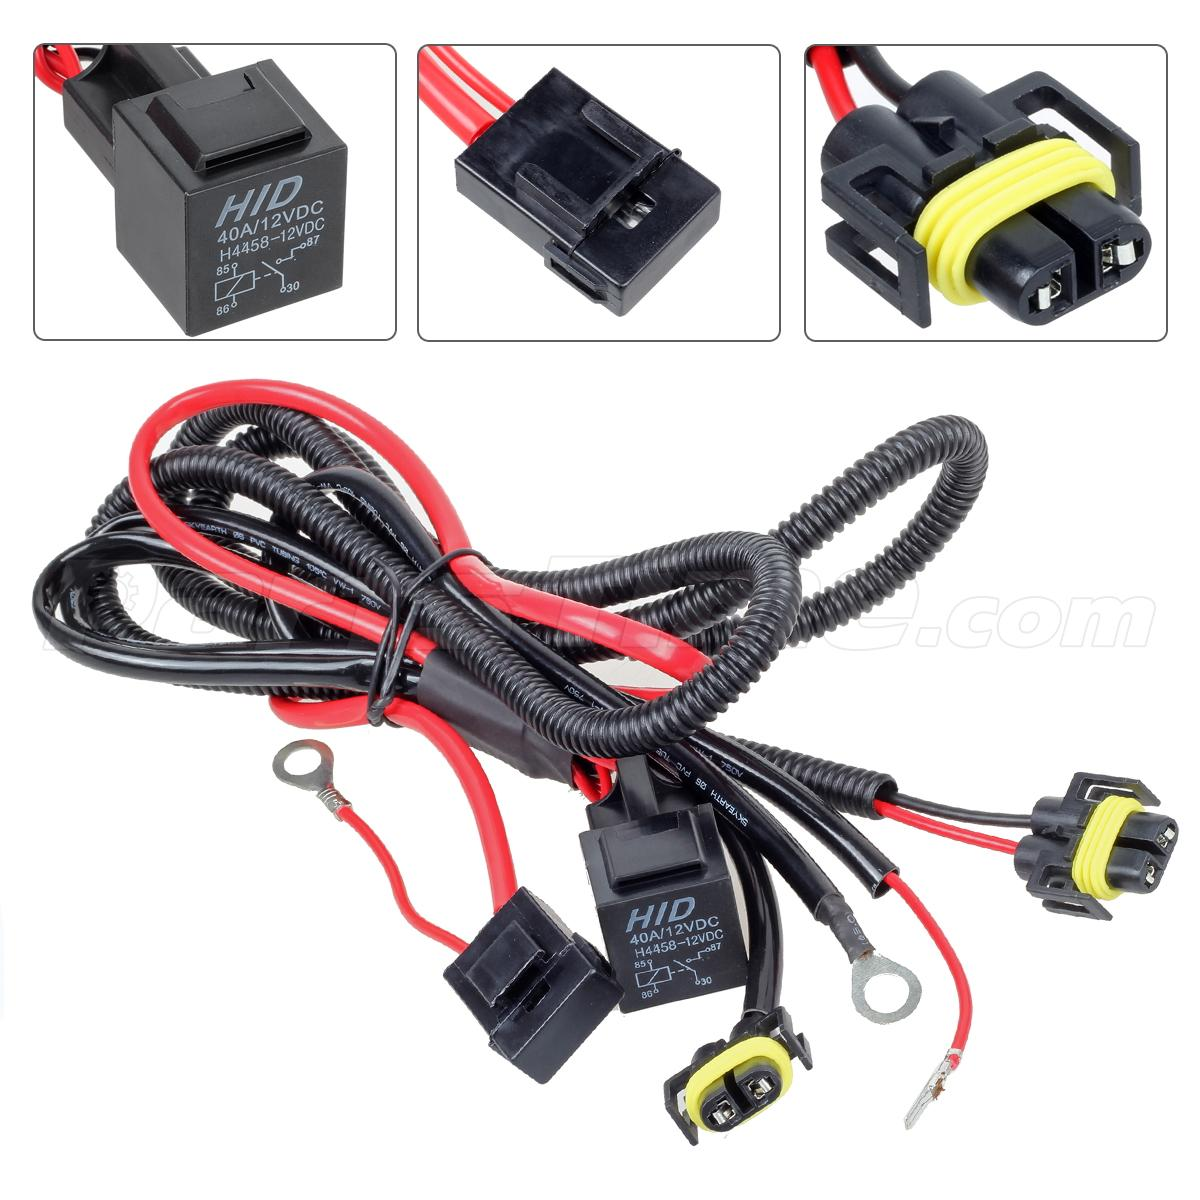 H11 880 881 Headlight Fog Light Drl Relay Wiring Harness For Hid Conversion Kit